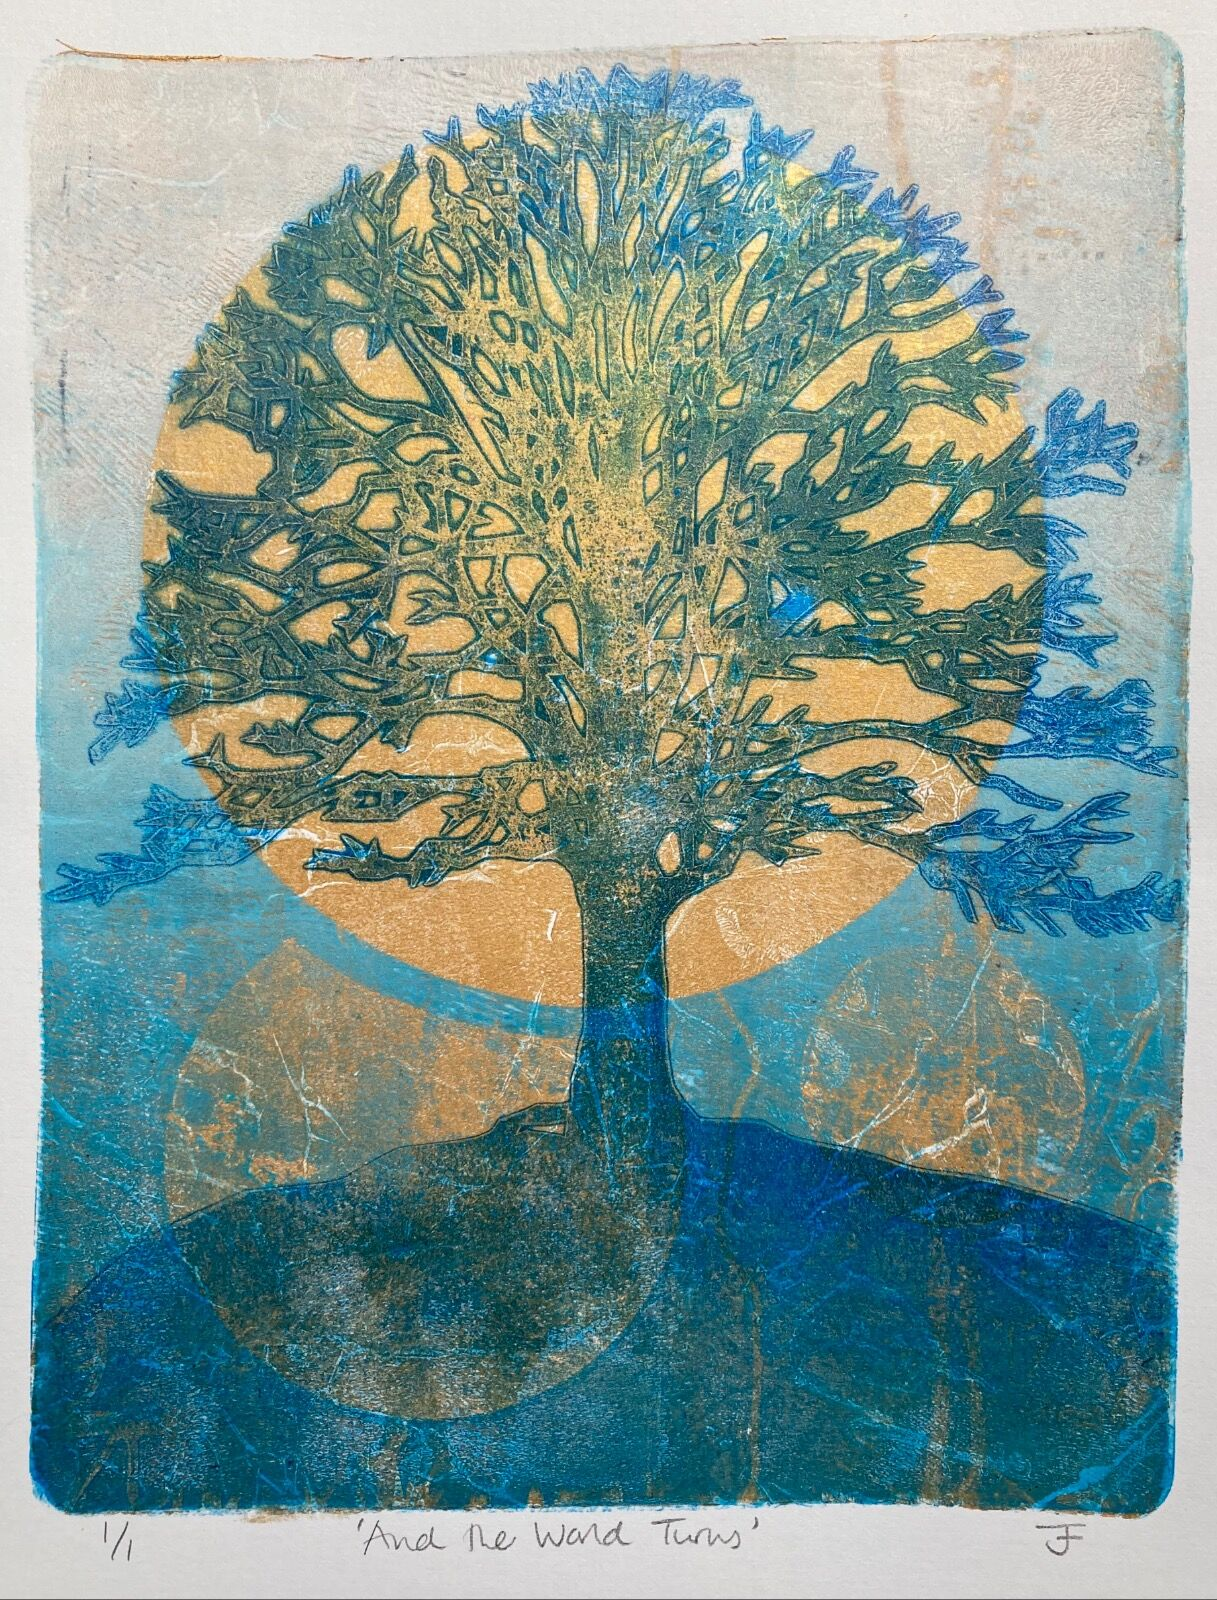 Monotype print of a silhouetted mature tree against a rising golden sun and a turquoise sky. Seventies British Folk Horror feel.